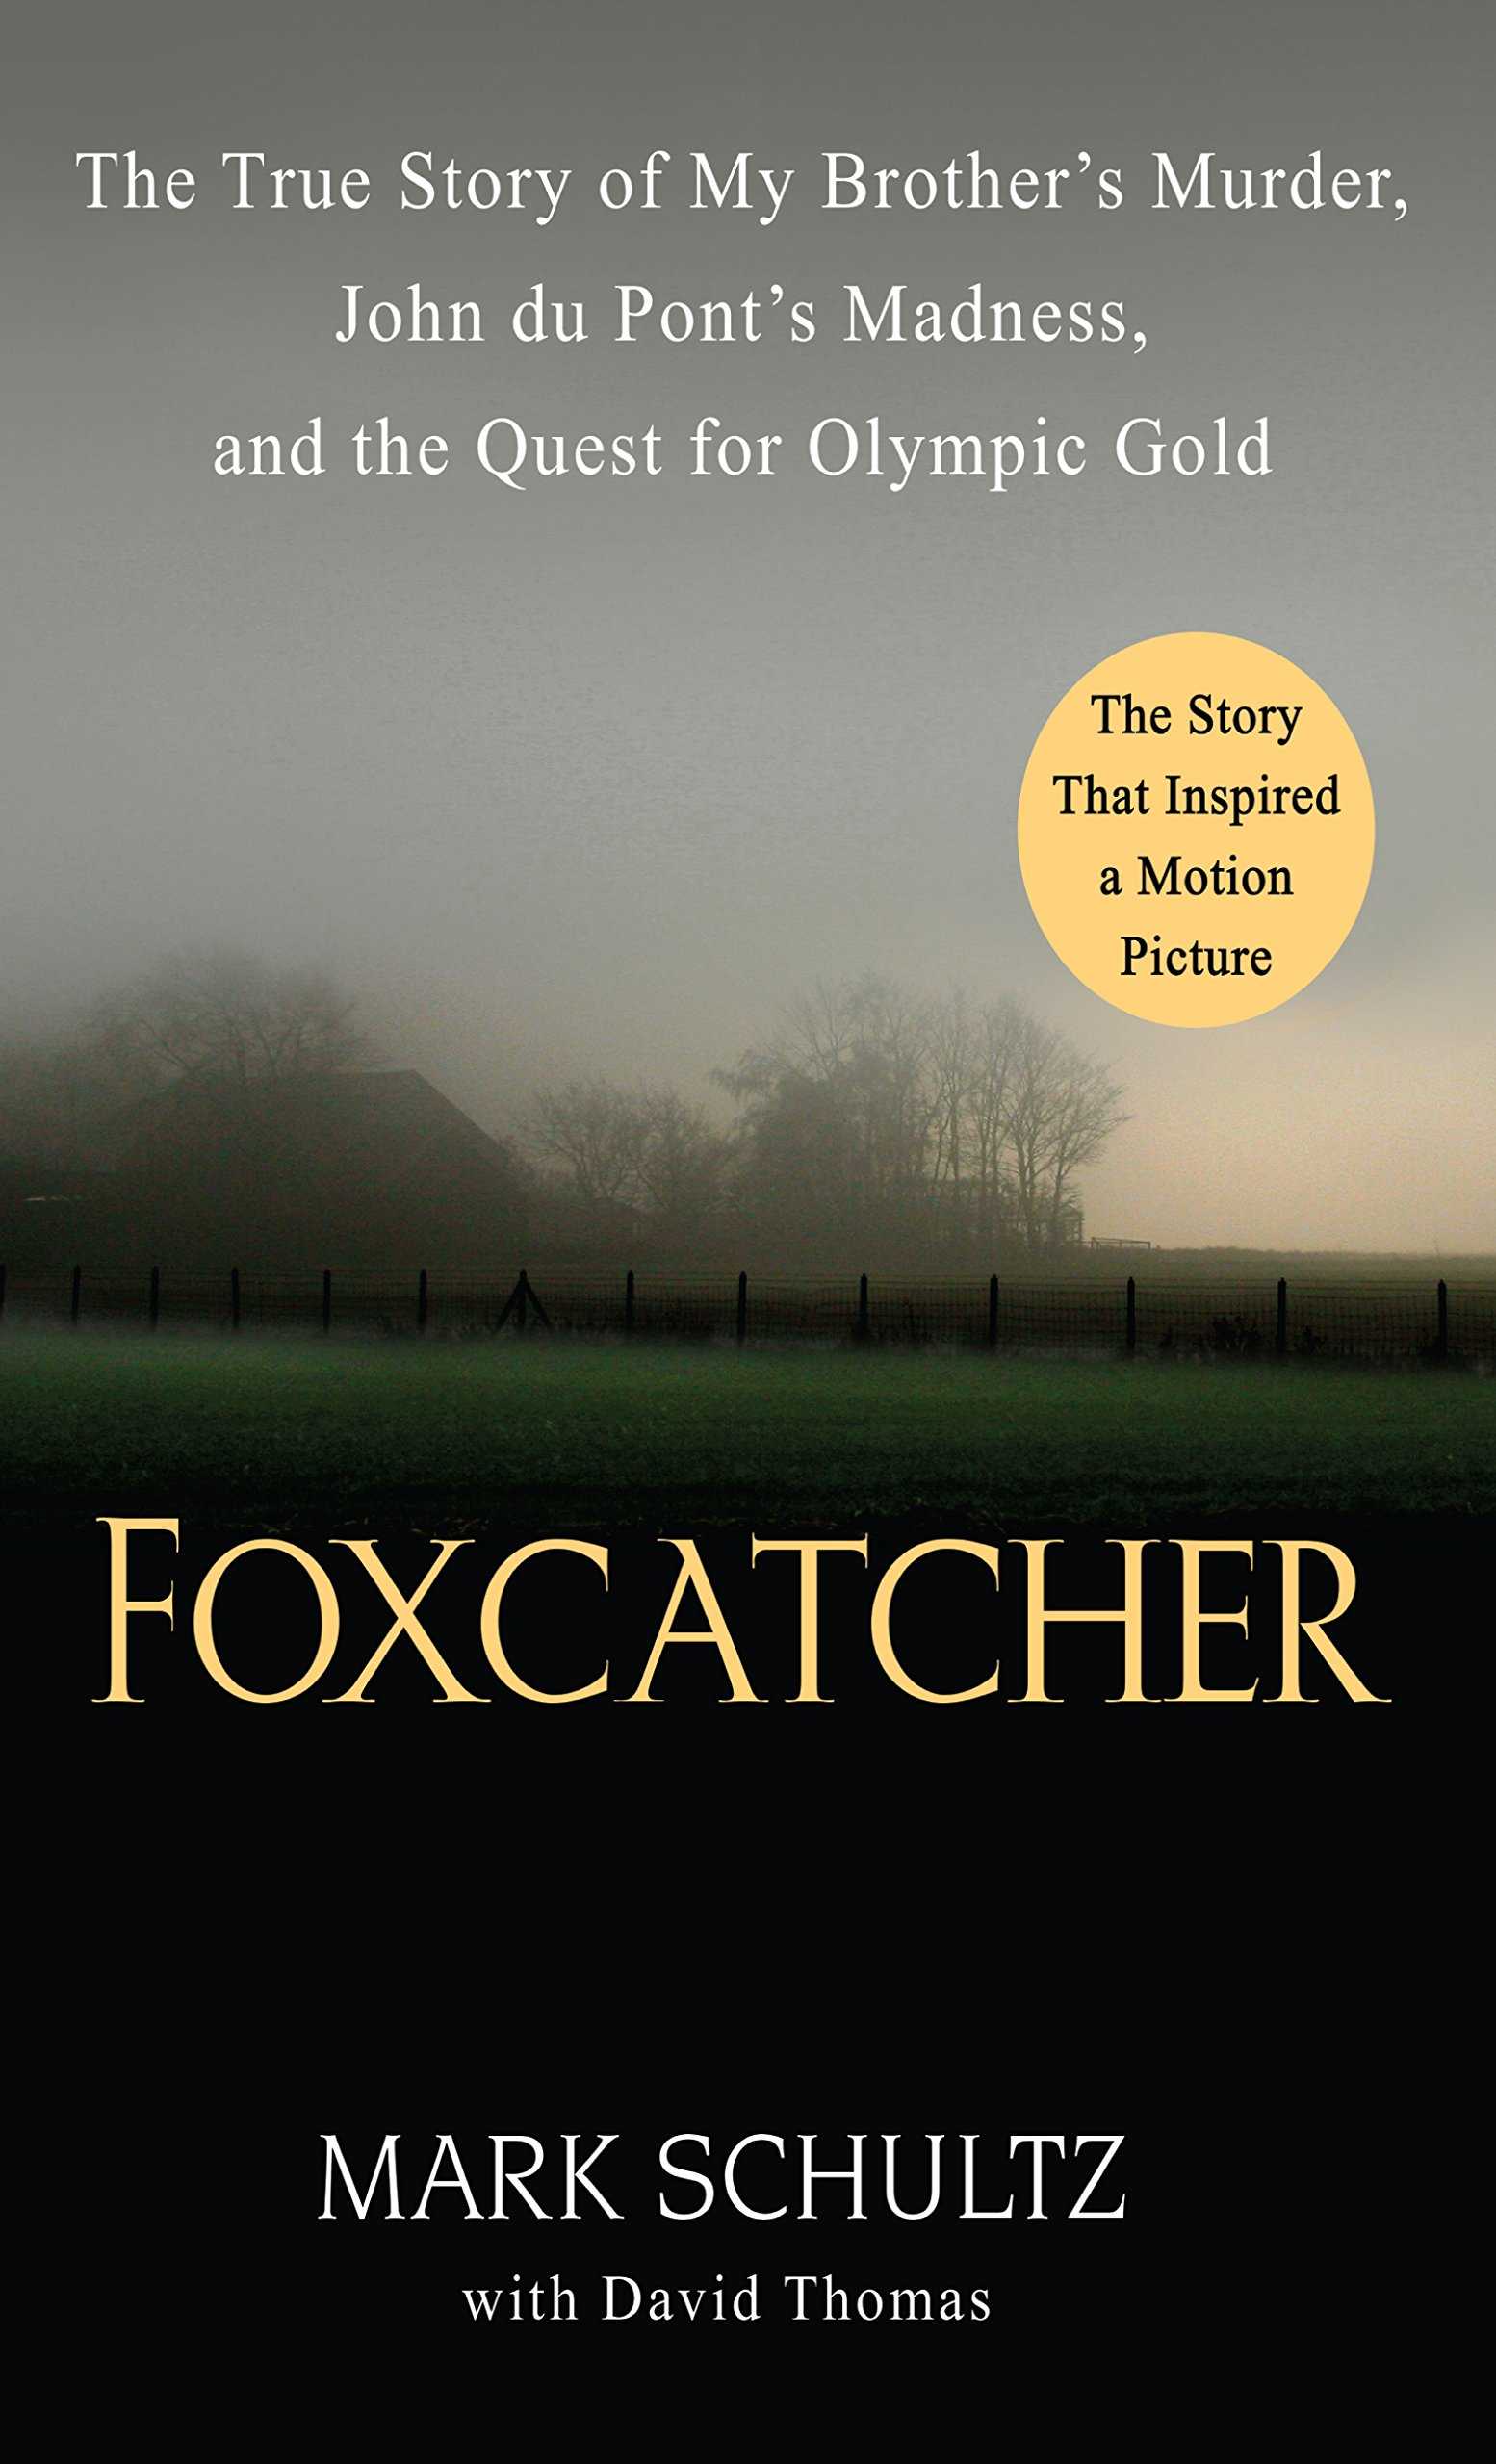 Download Foxcatcher: The True Story of My Brother's Murder, John du Pont's Madness, and the Quest for Olympic Gold (Thorndike Press Large Print Crime Scene) ebook